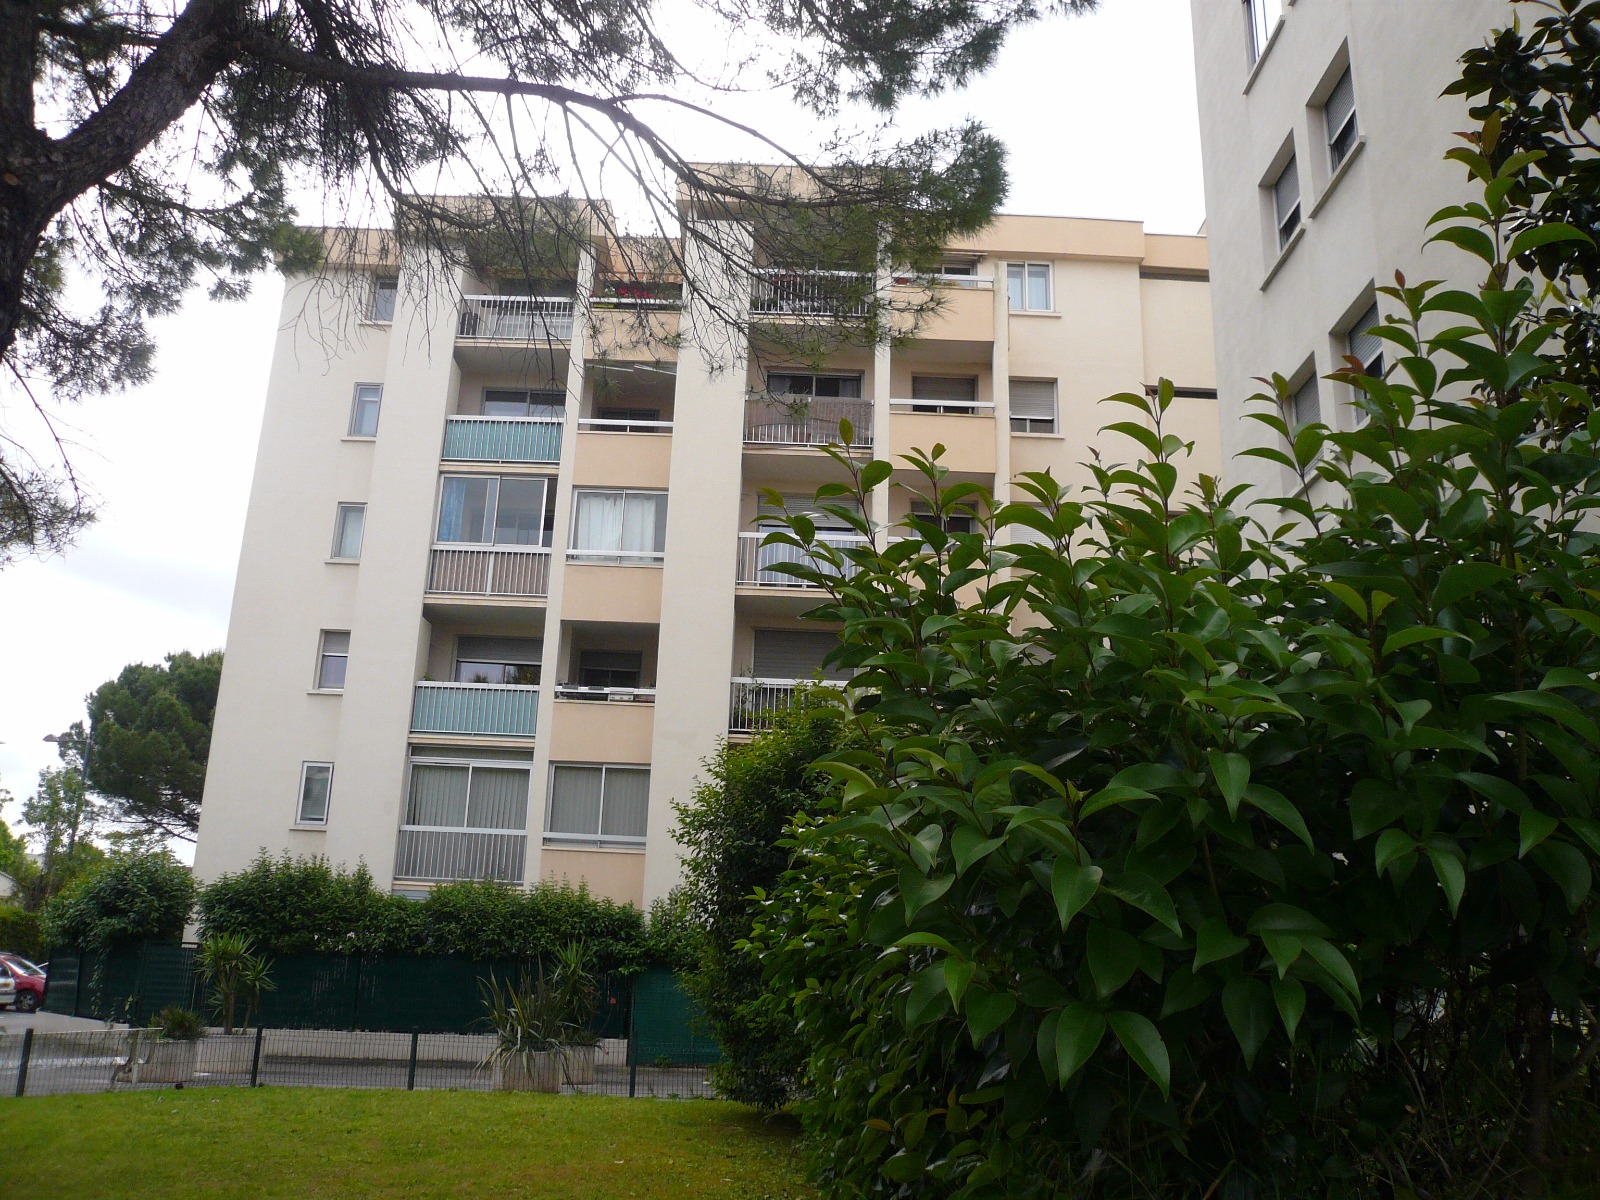 Appartement montpellier montpellier quartier port marianne - Appartement a vendre montpellier port marianne ...